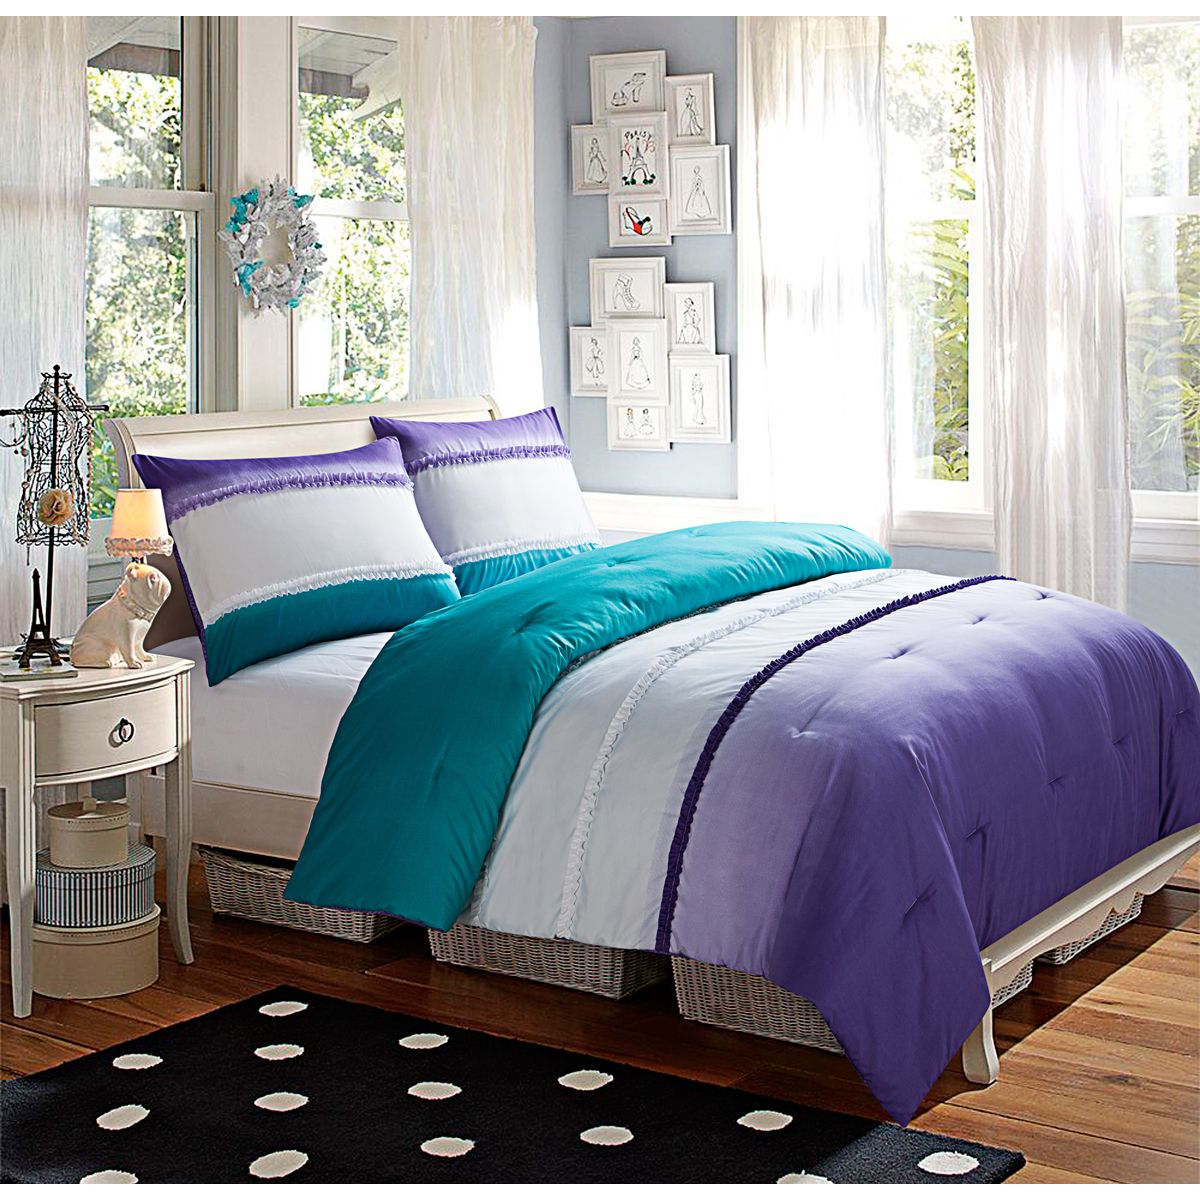 luxury ralph comforter pinterest design of l best on images grace linens and concerning white bed bedding lauren gallery blue ombre